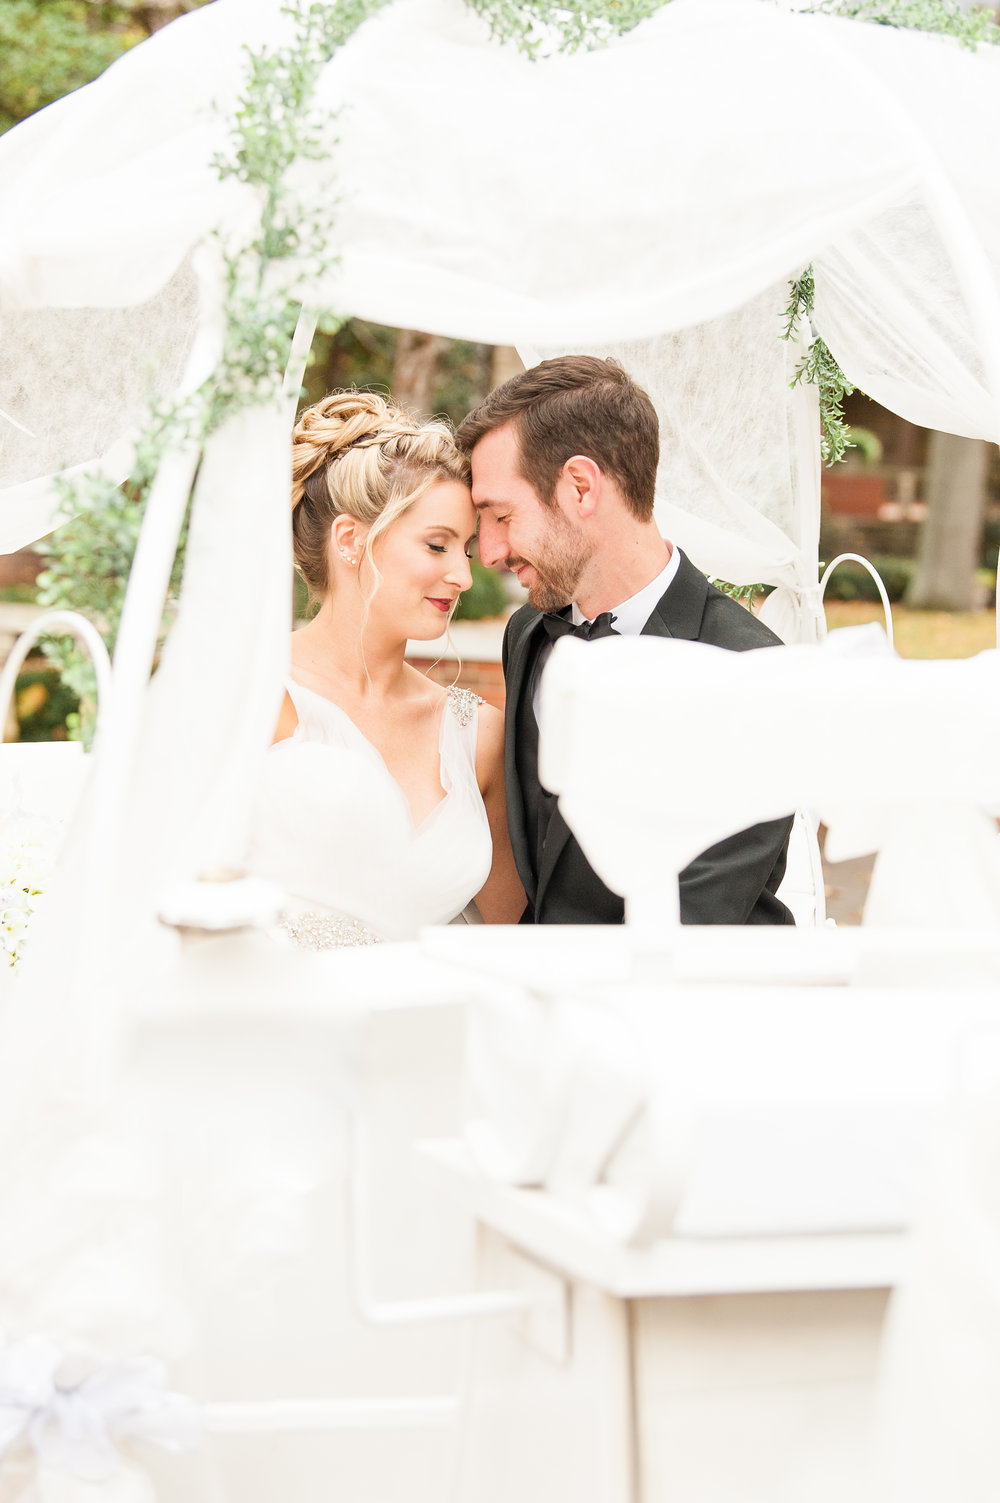 Cinderella Wedding theme  Photo:  Bret and Brandie Photography   Cinderella Carriage:  Rockn'B' Horse Carriage   HMU:  The Hair Traveler   Coordinating and Styling:  River Top Event Coordinating